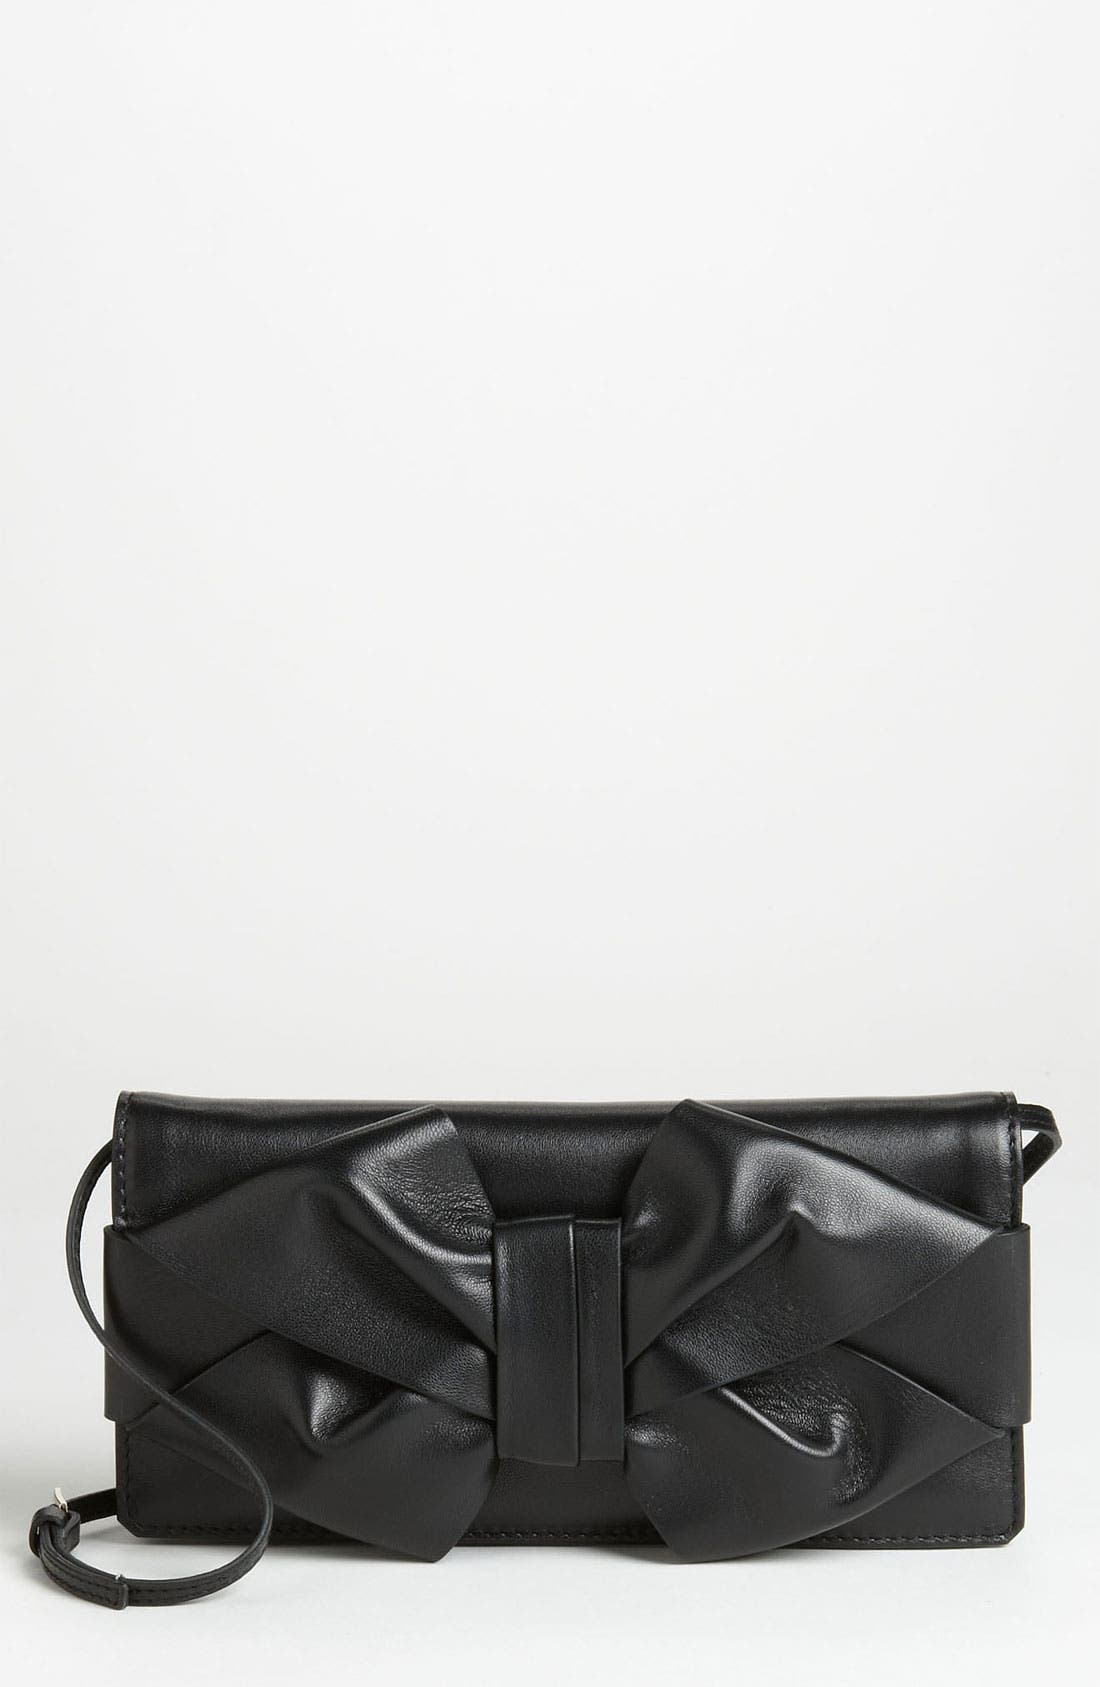 Alternate Image 1 Selected - Valentino 'Bow' Leather Clutch